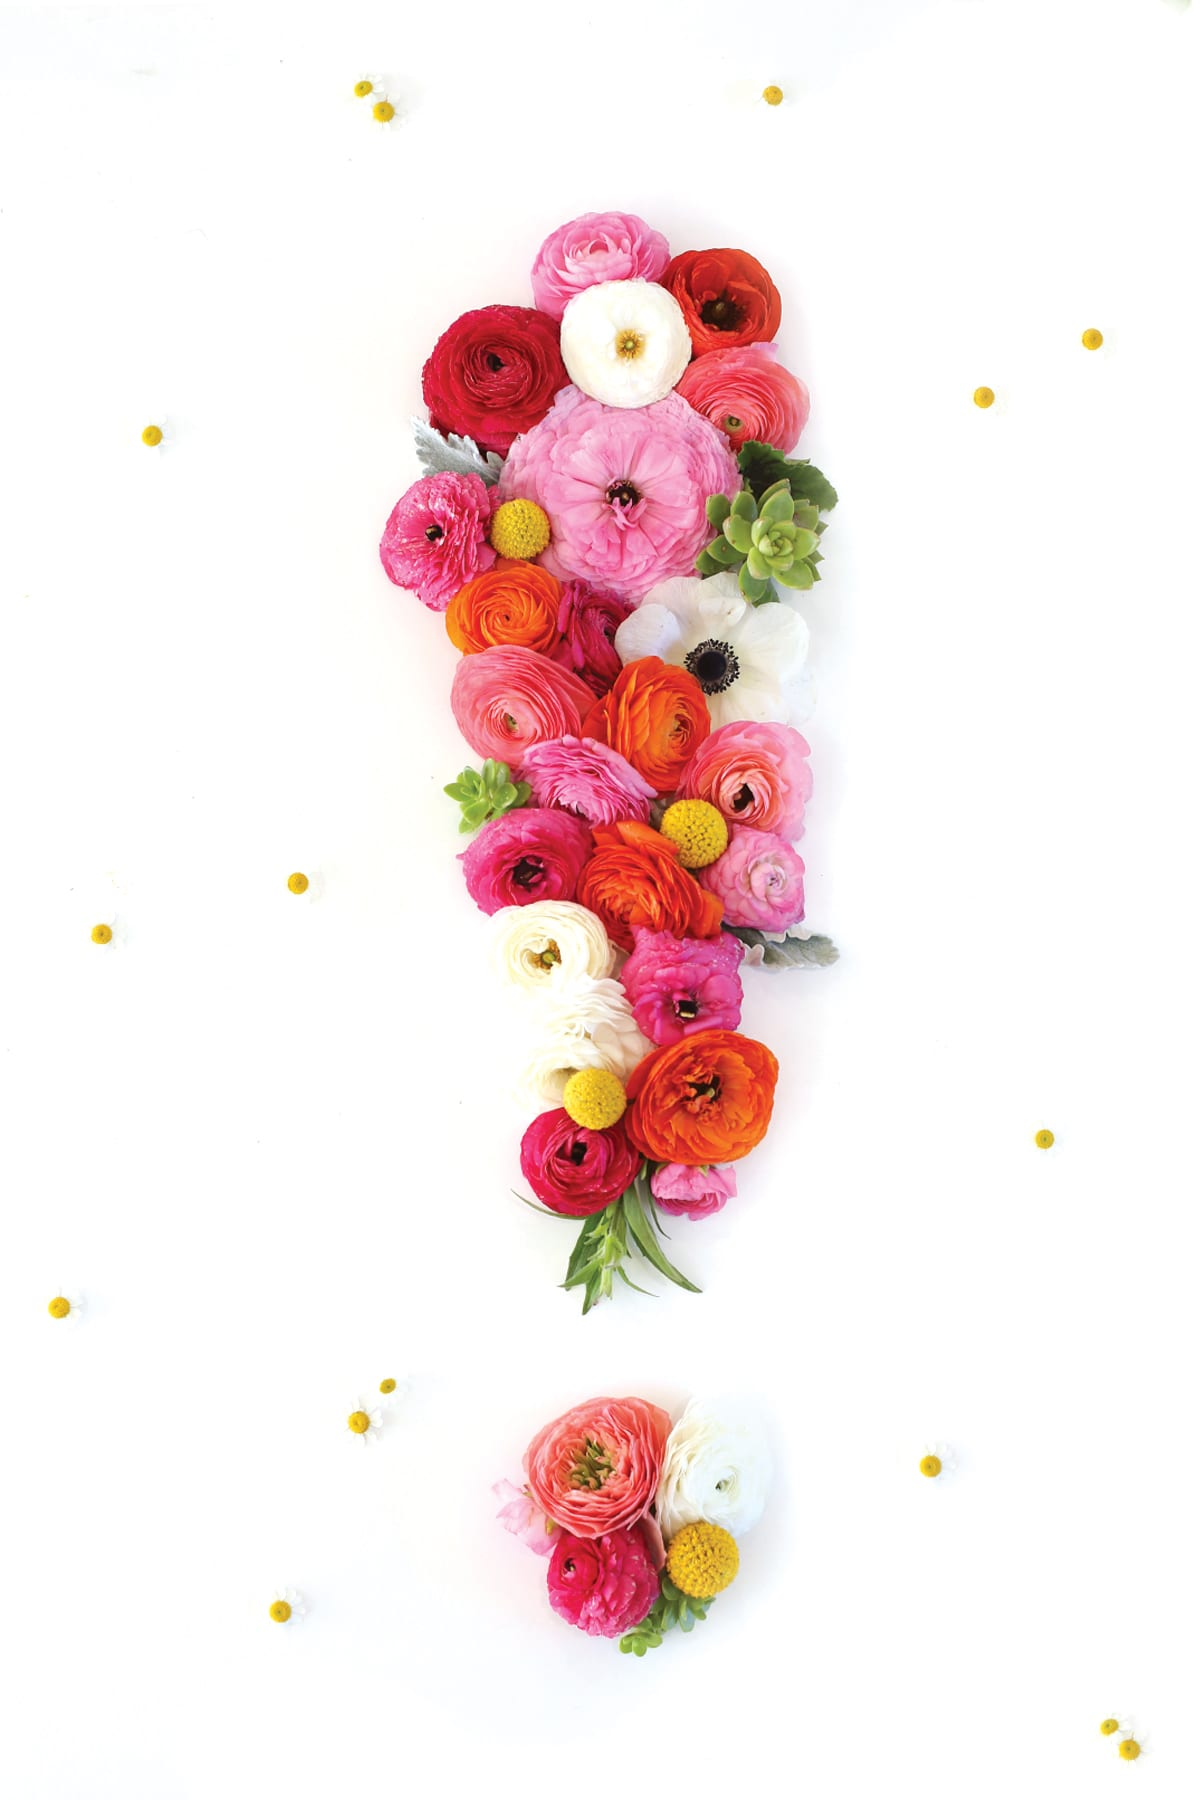 Floral exclamation point